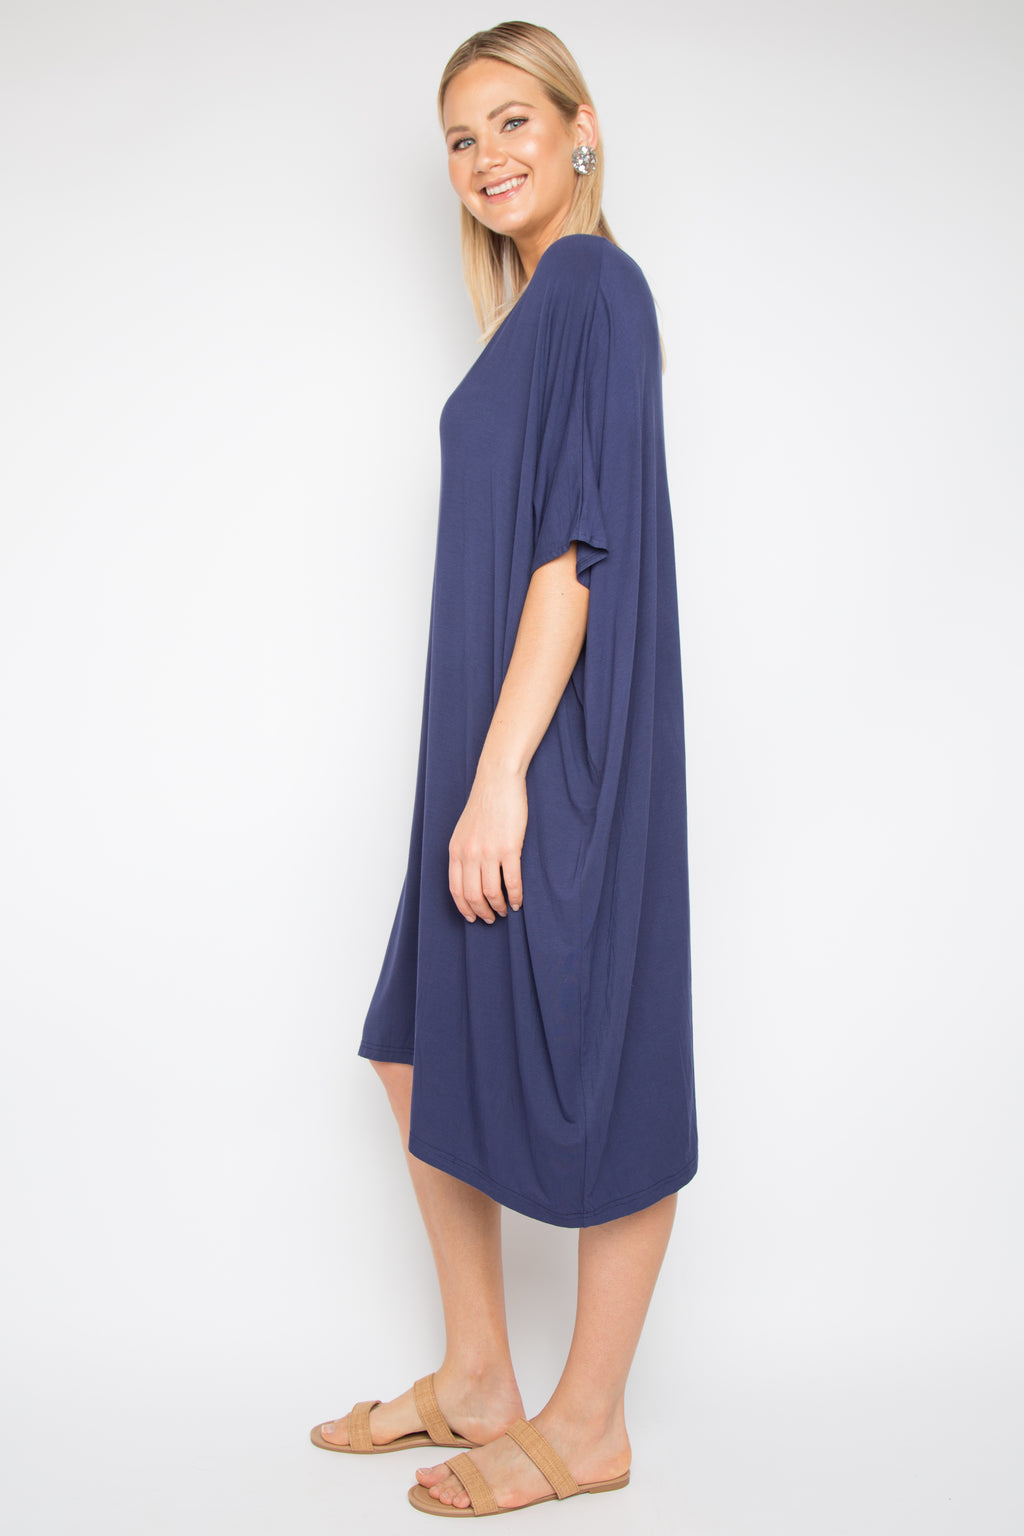 A Nice Dress in Navy (bamboo)